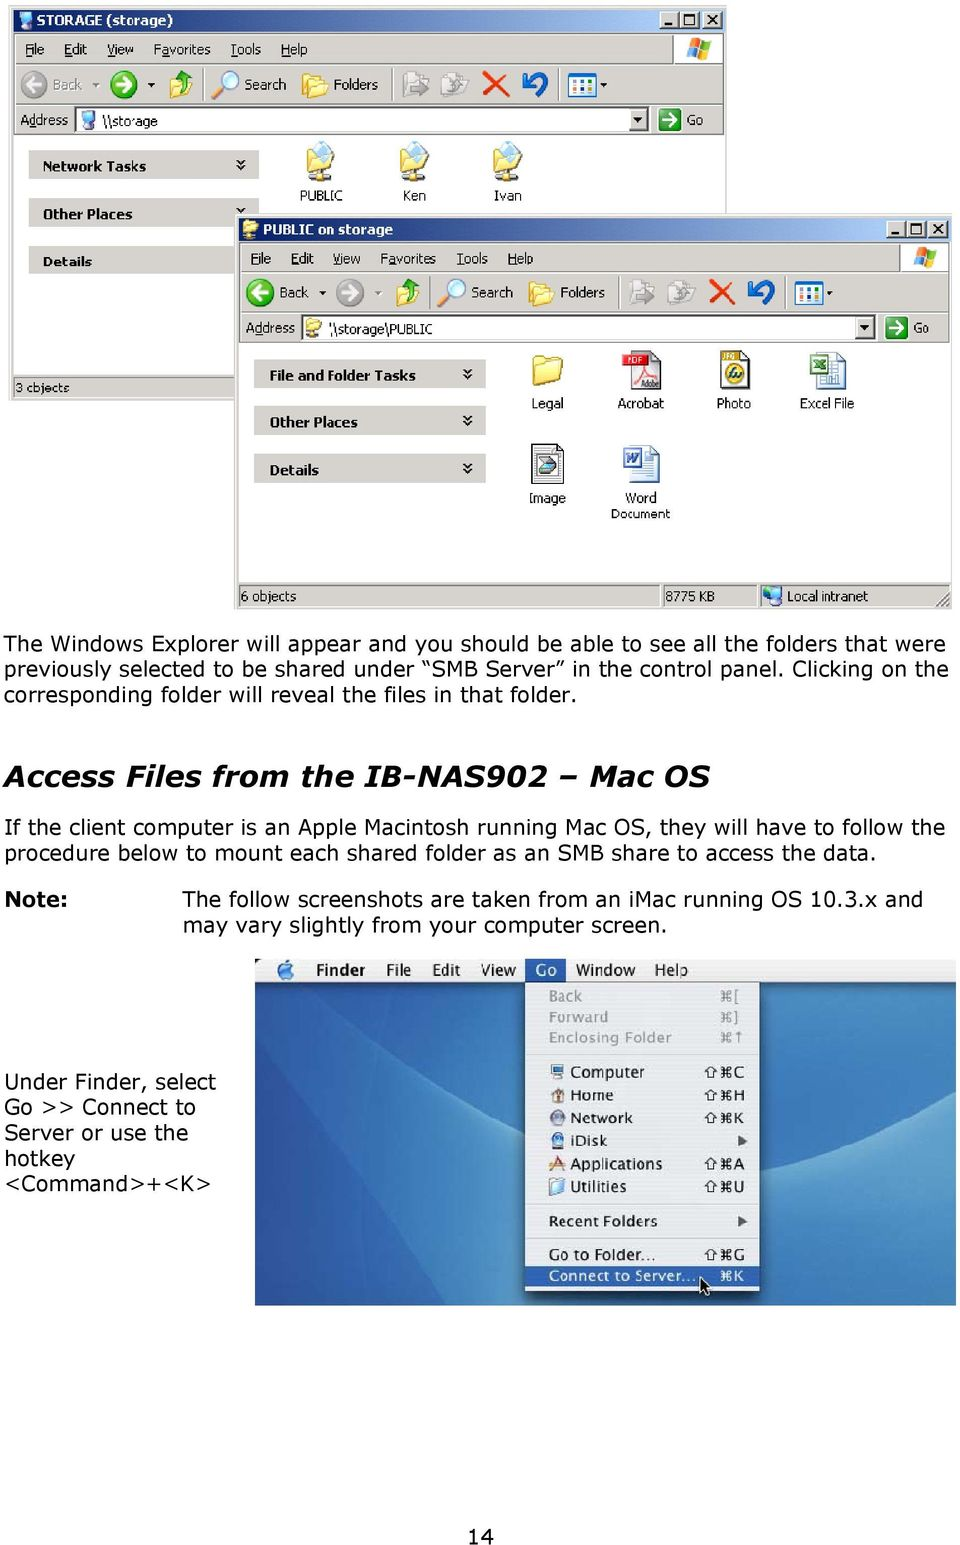 Access Files from the IB-NAS902 Mac OS If the client computer is an Apple Macintosh running Mac OS, they will have to follow the procedure below to mount each